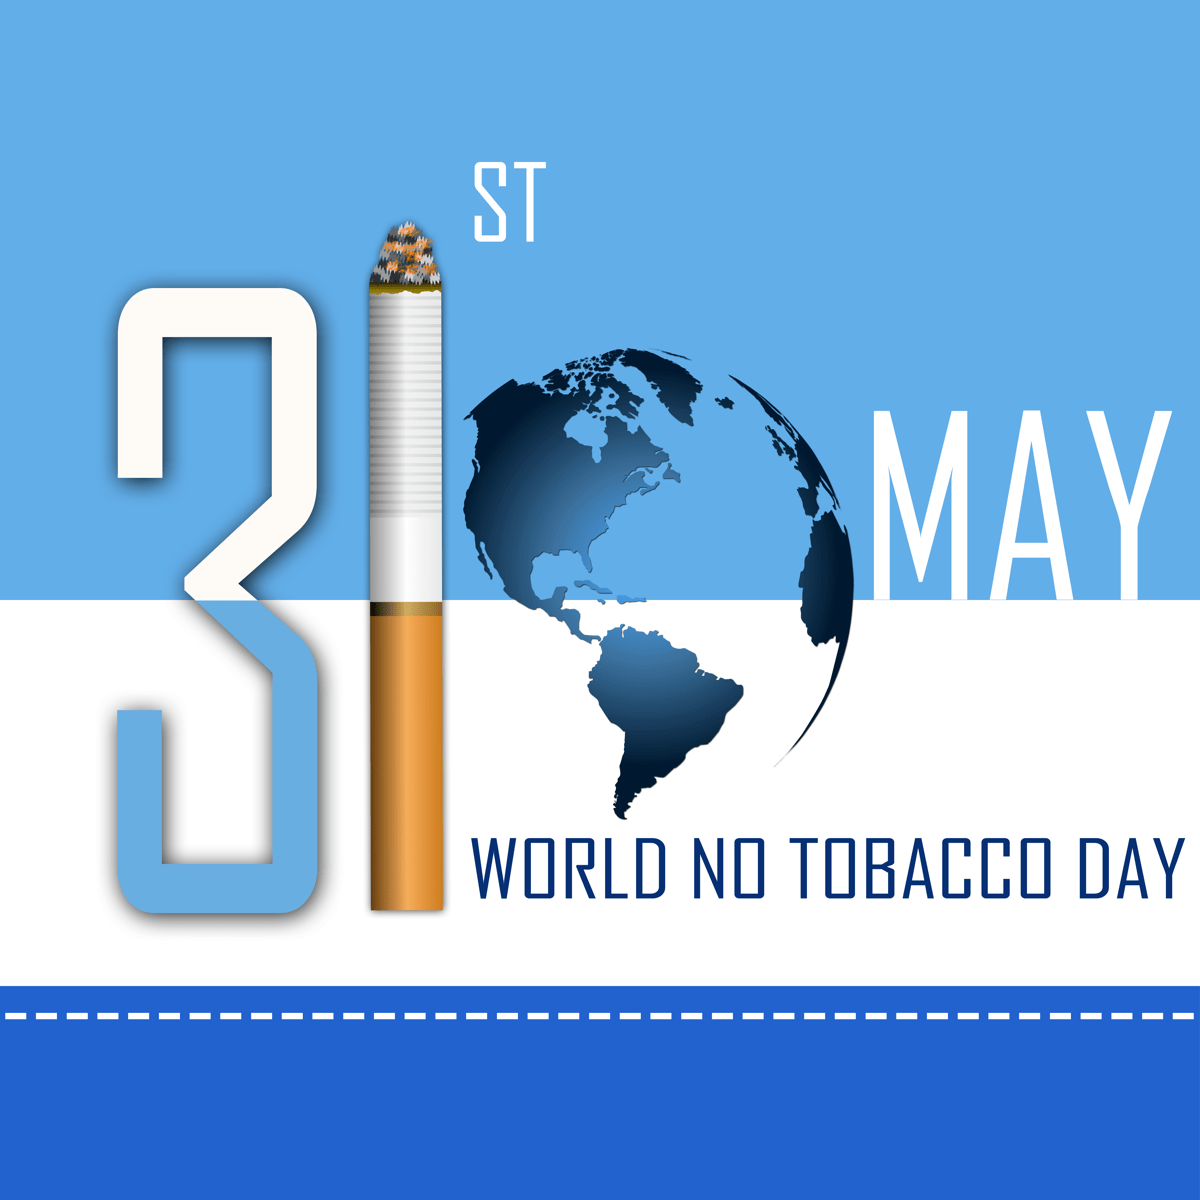 Stop Smoking Quotes Wallpaper World No Tobacco Day How Is Smoking Affecting My Health